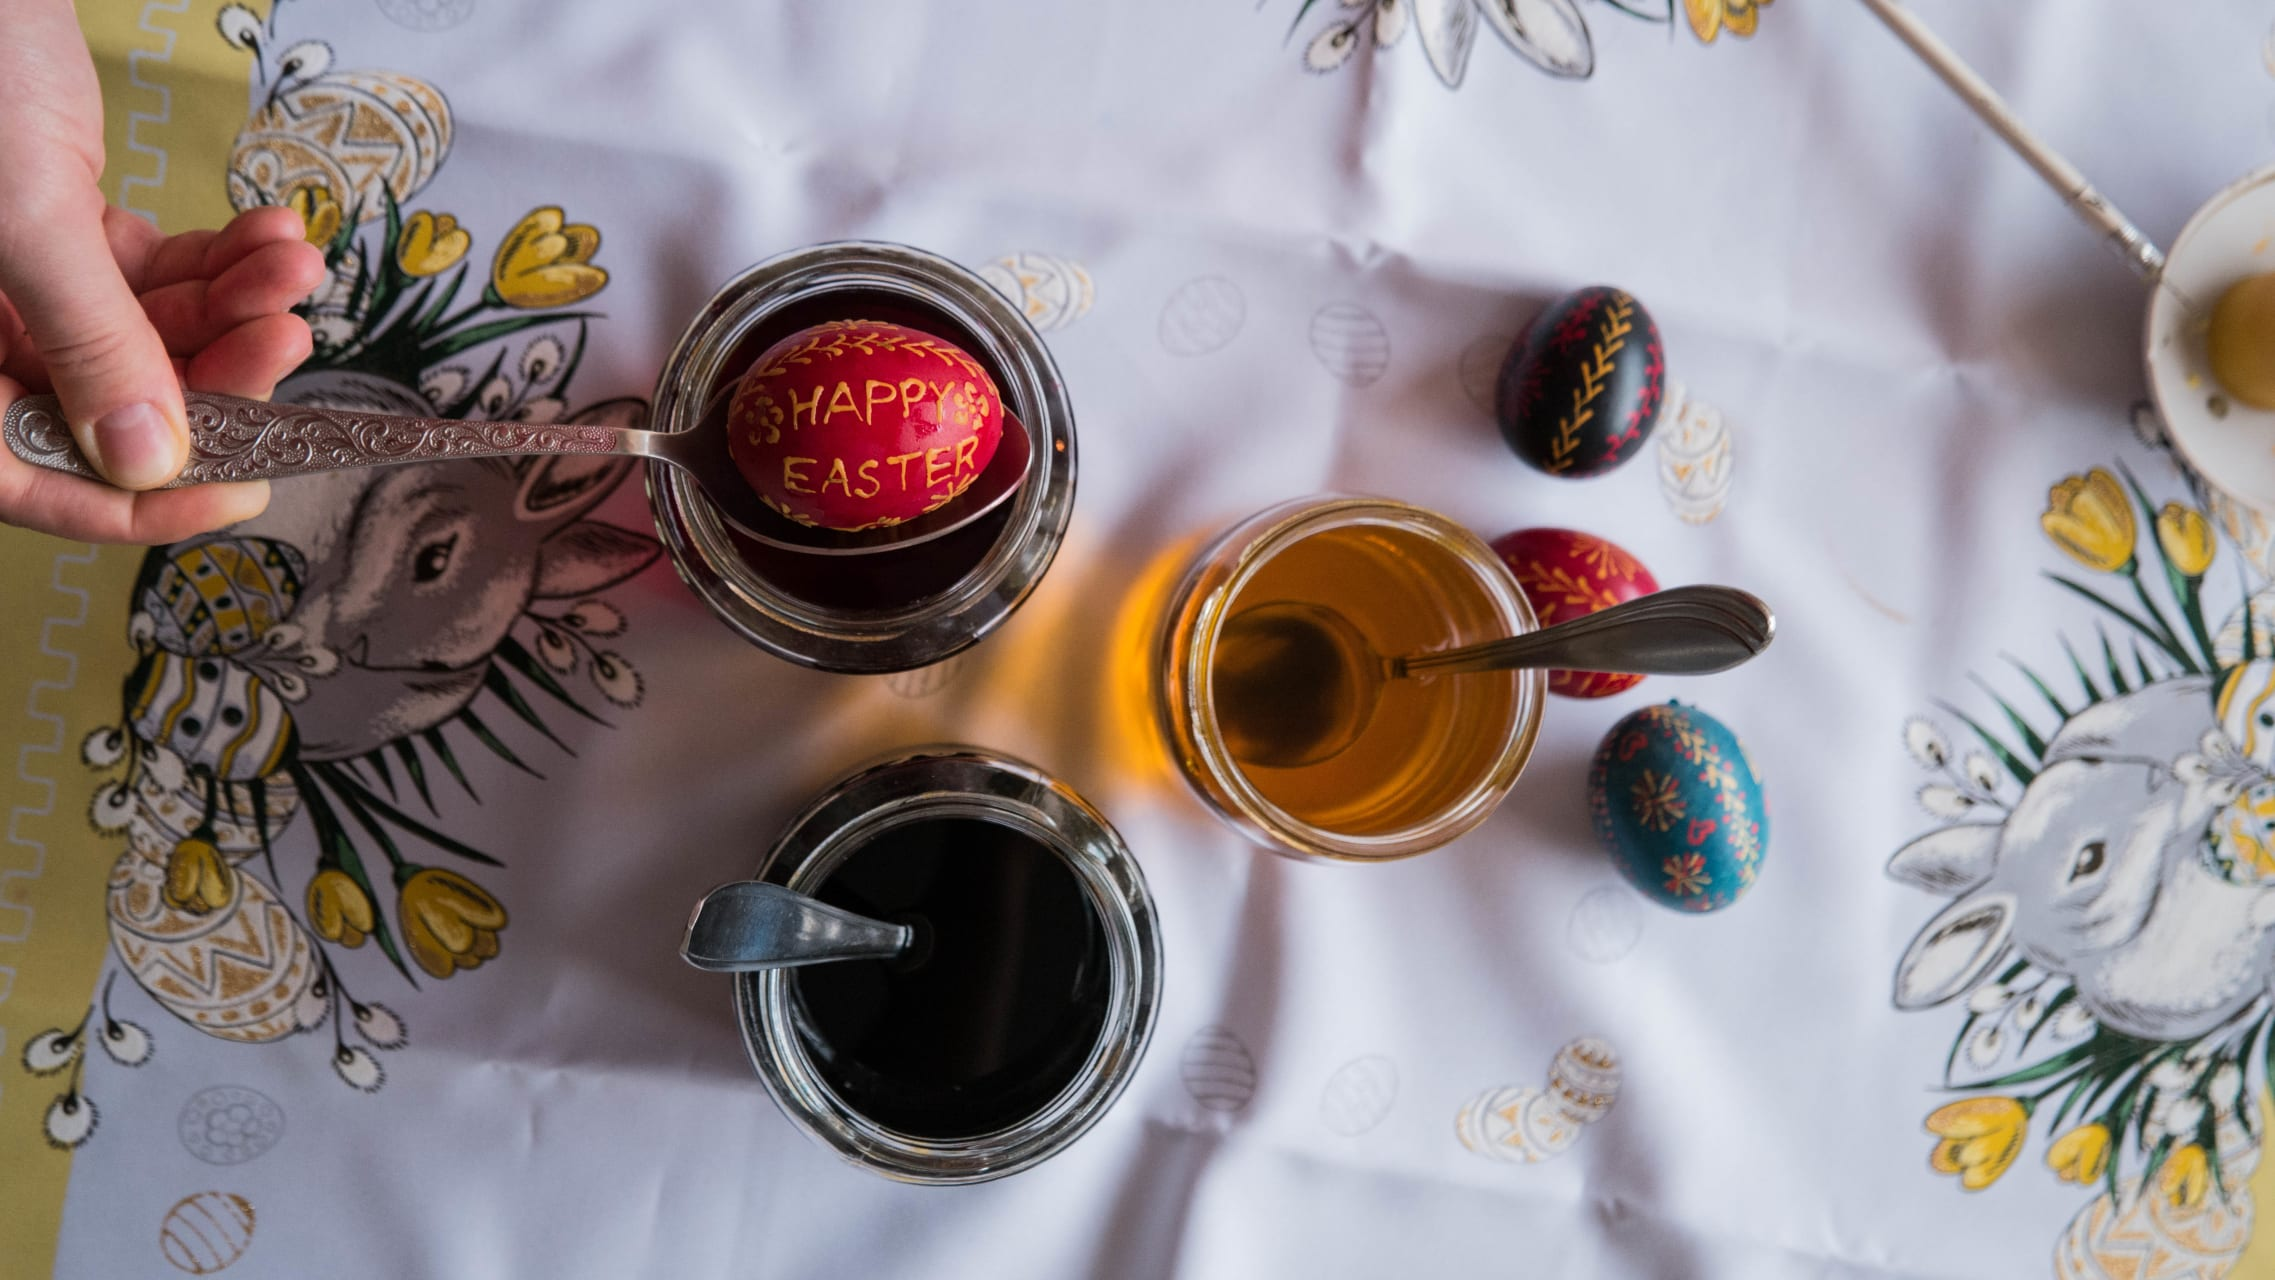 Prague - Easter Special - Egg Decorating and Folklore Traditions of Czech Republic